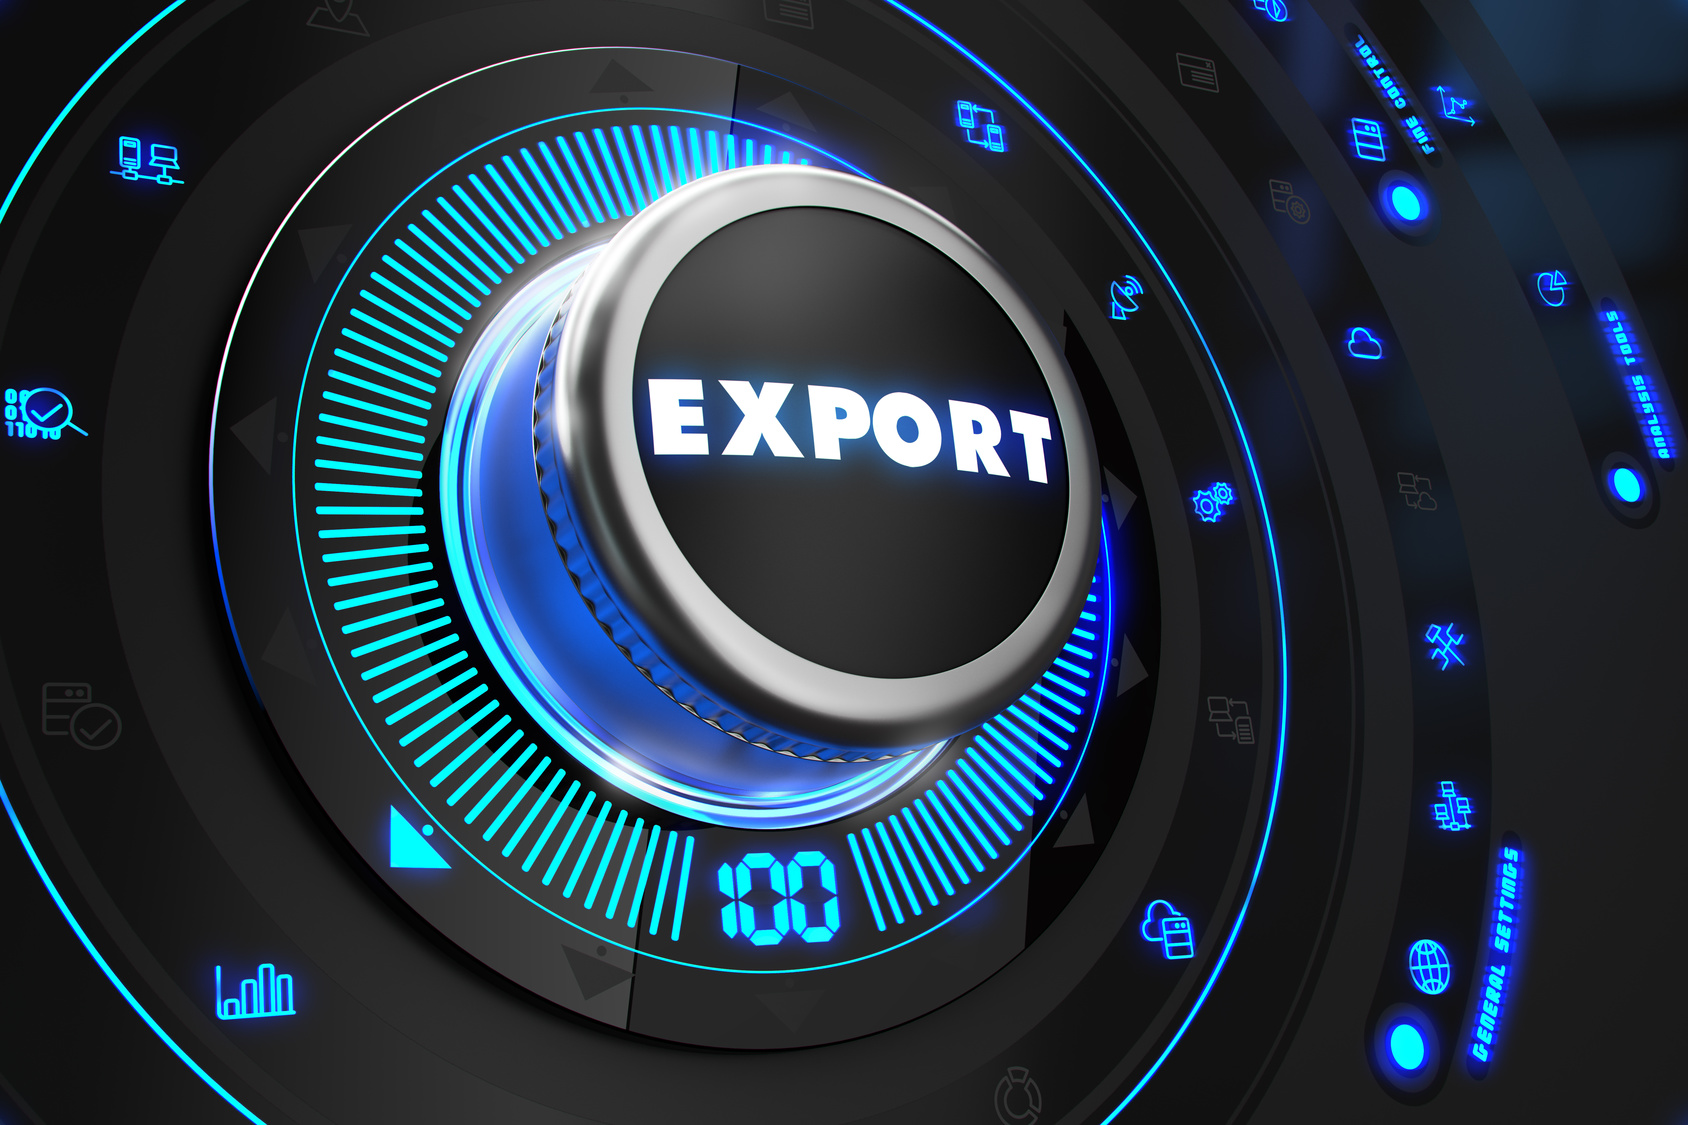 Export Regulator on Black Control